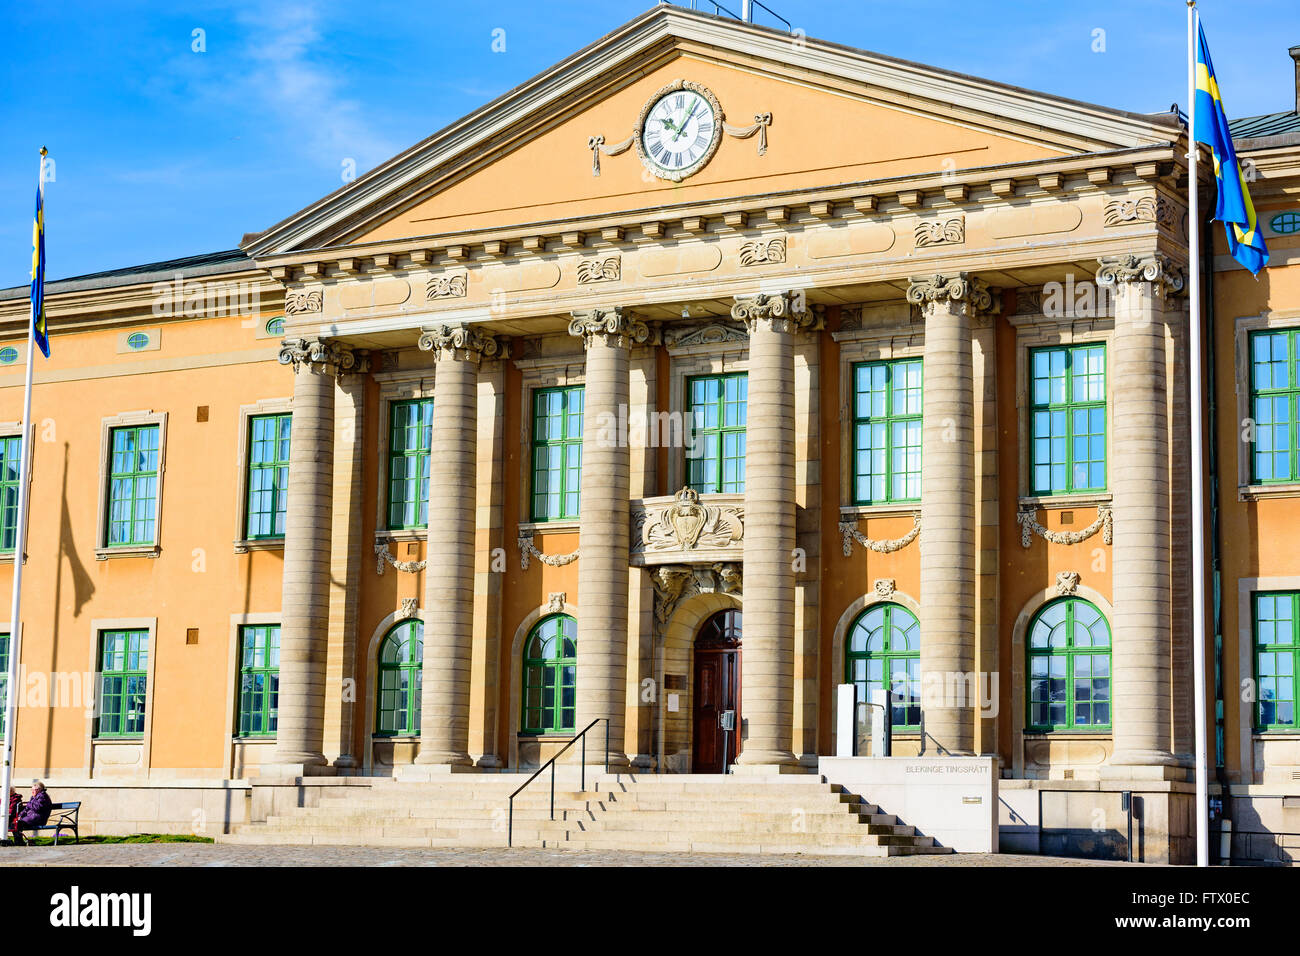 Karlskrona, Sweden - March 27, 2016: The district courthouse Blekinge Tingsratt as seen from the town square one - Stock Image